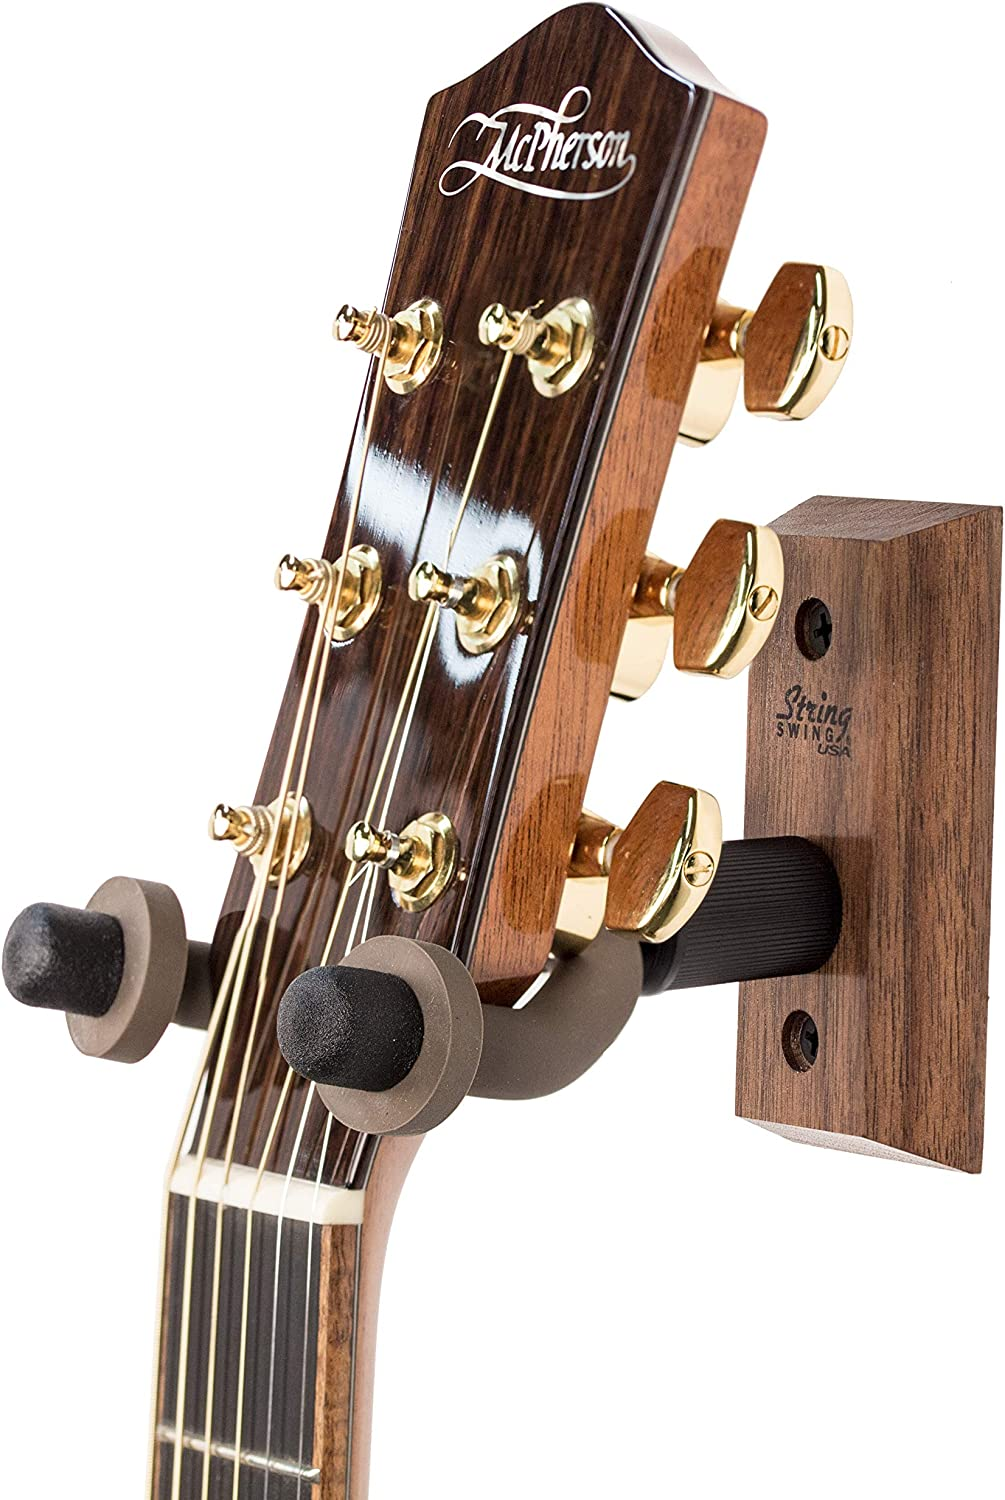 String Swing CC01-BW Hardwood Home & Studio Wall Mount Guitar Hanger - Black Walnut